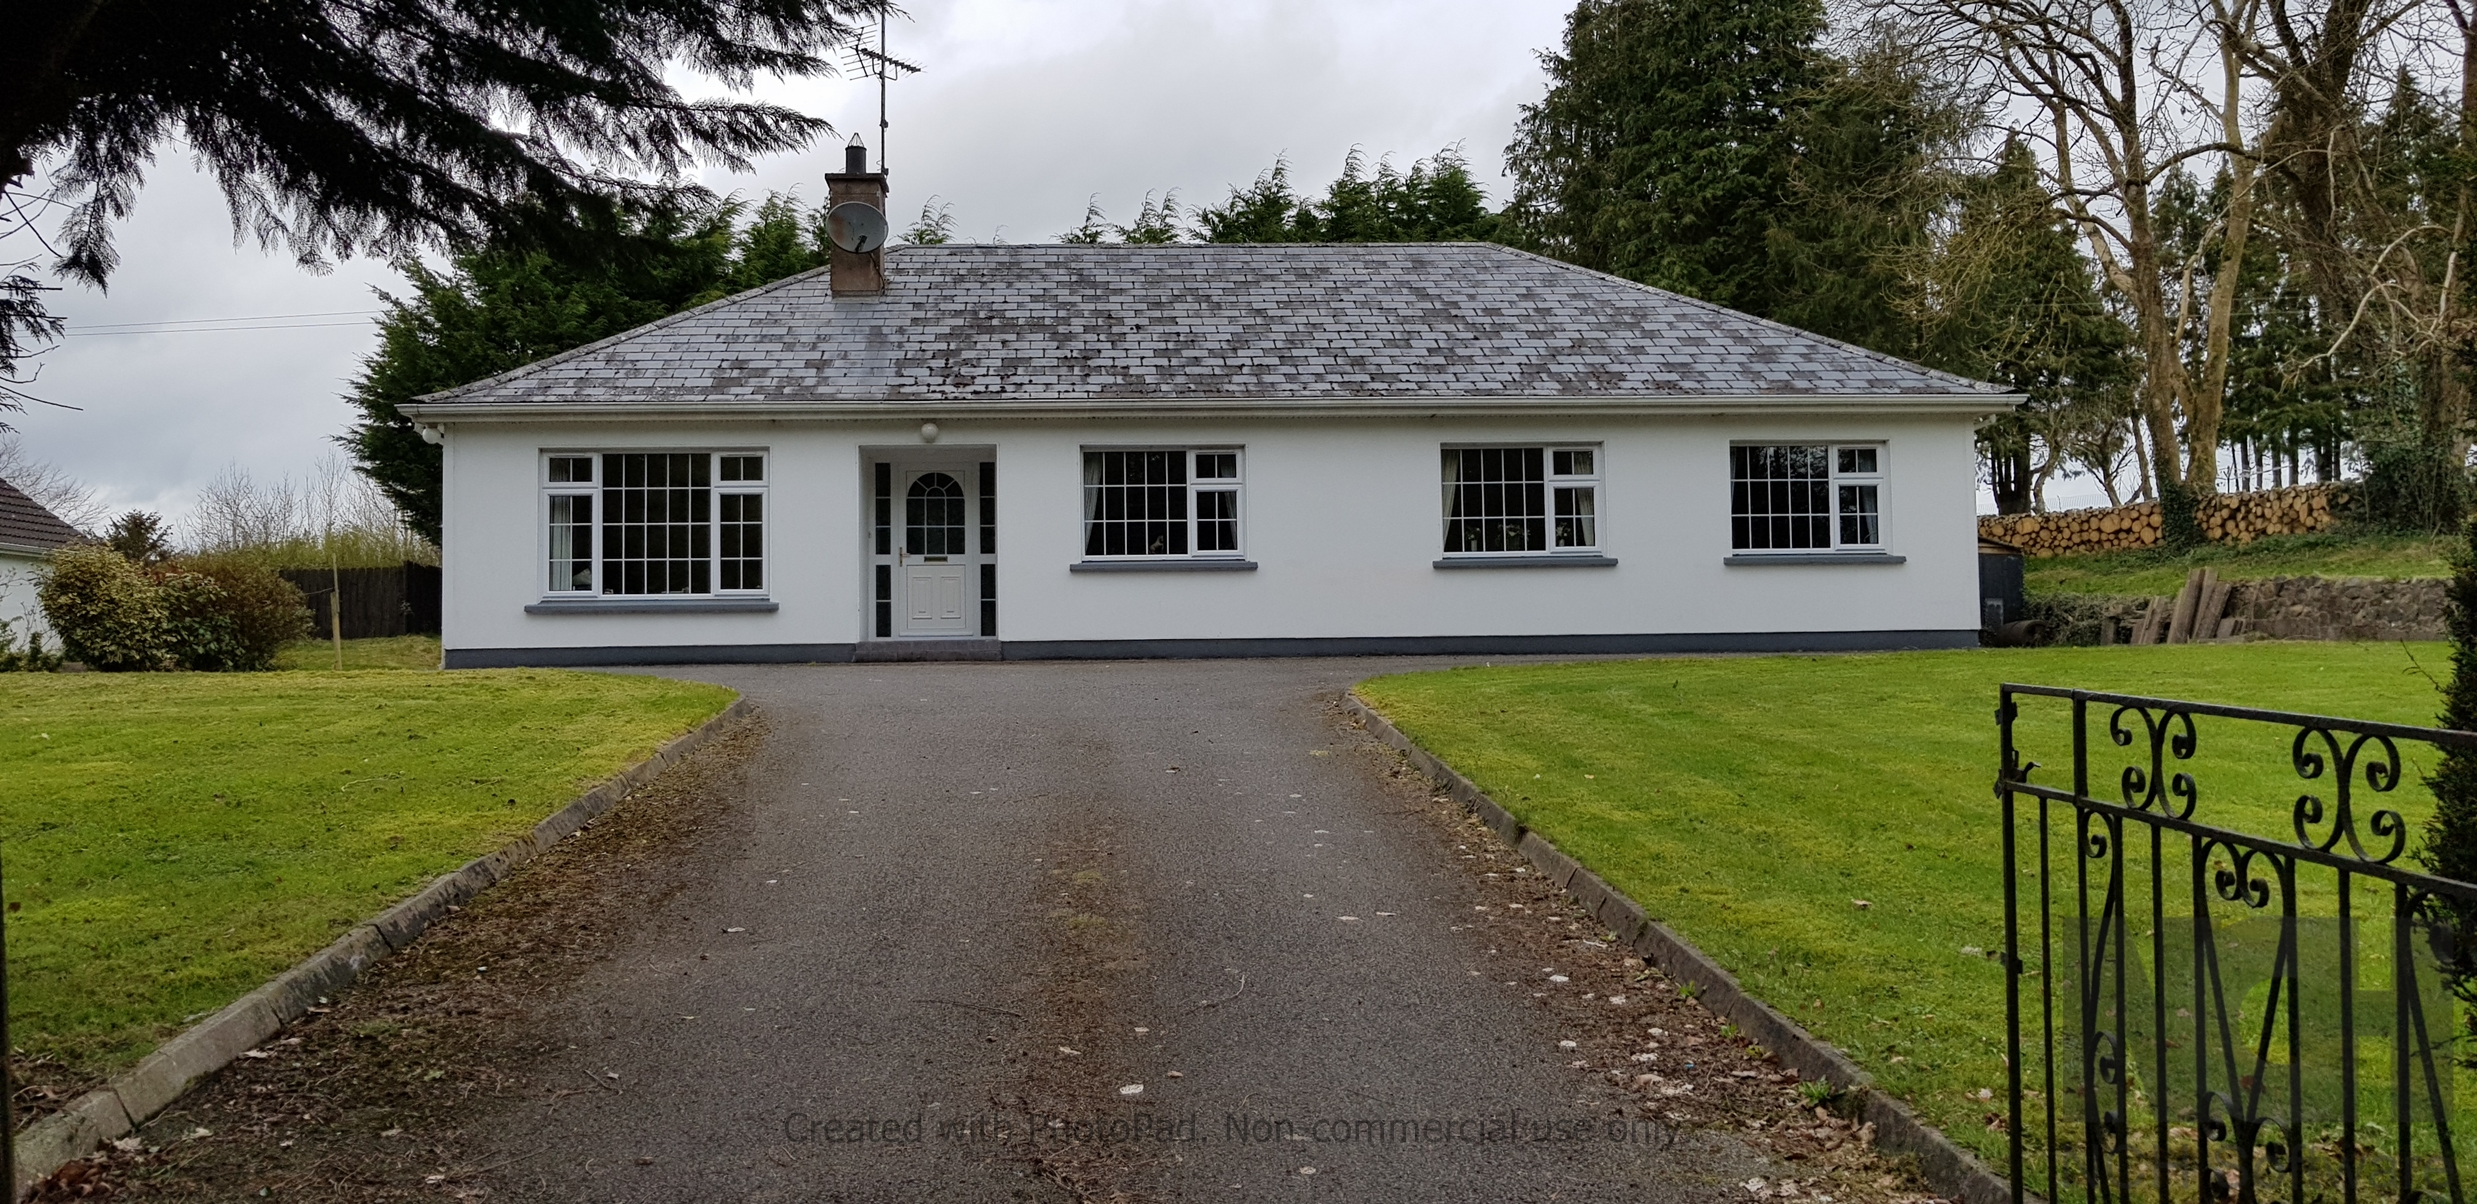 CARSON, DARTRY, COOTEHILL,  CO. MONAGHAN. H16 PD80